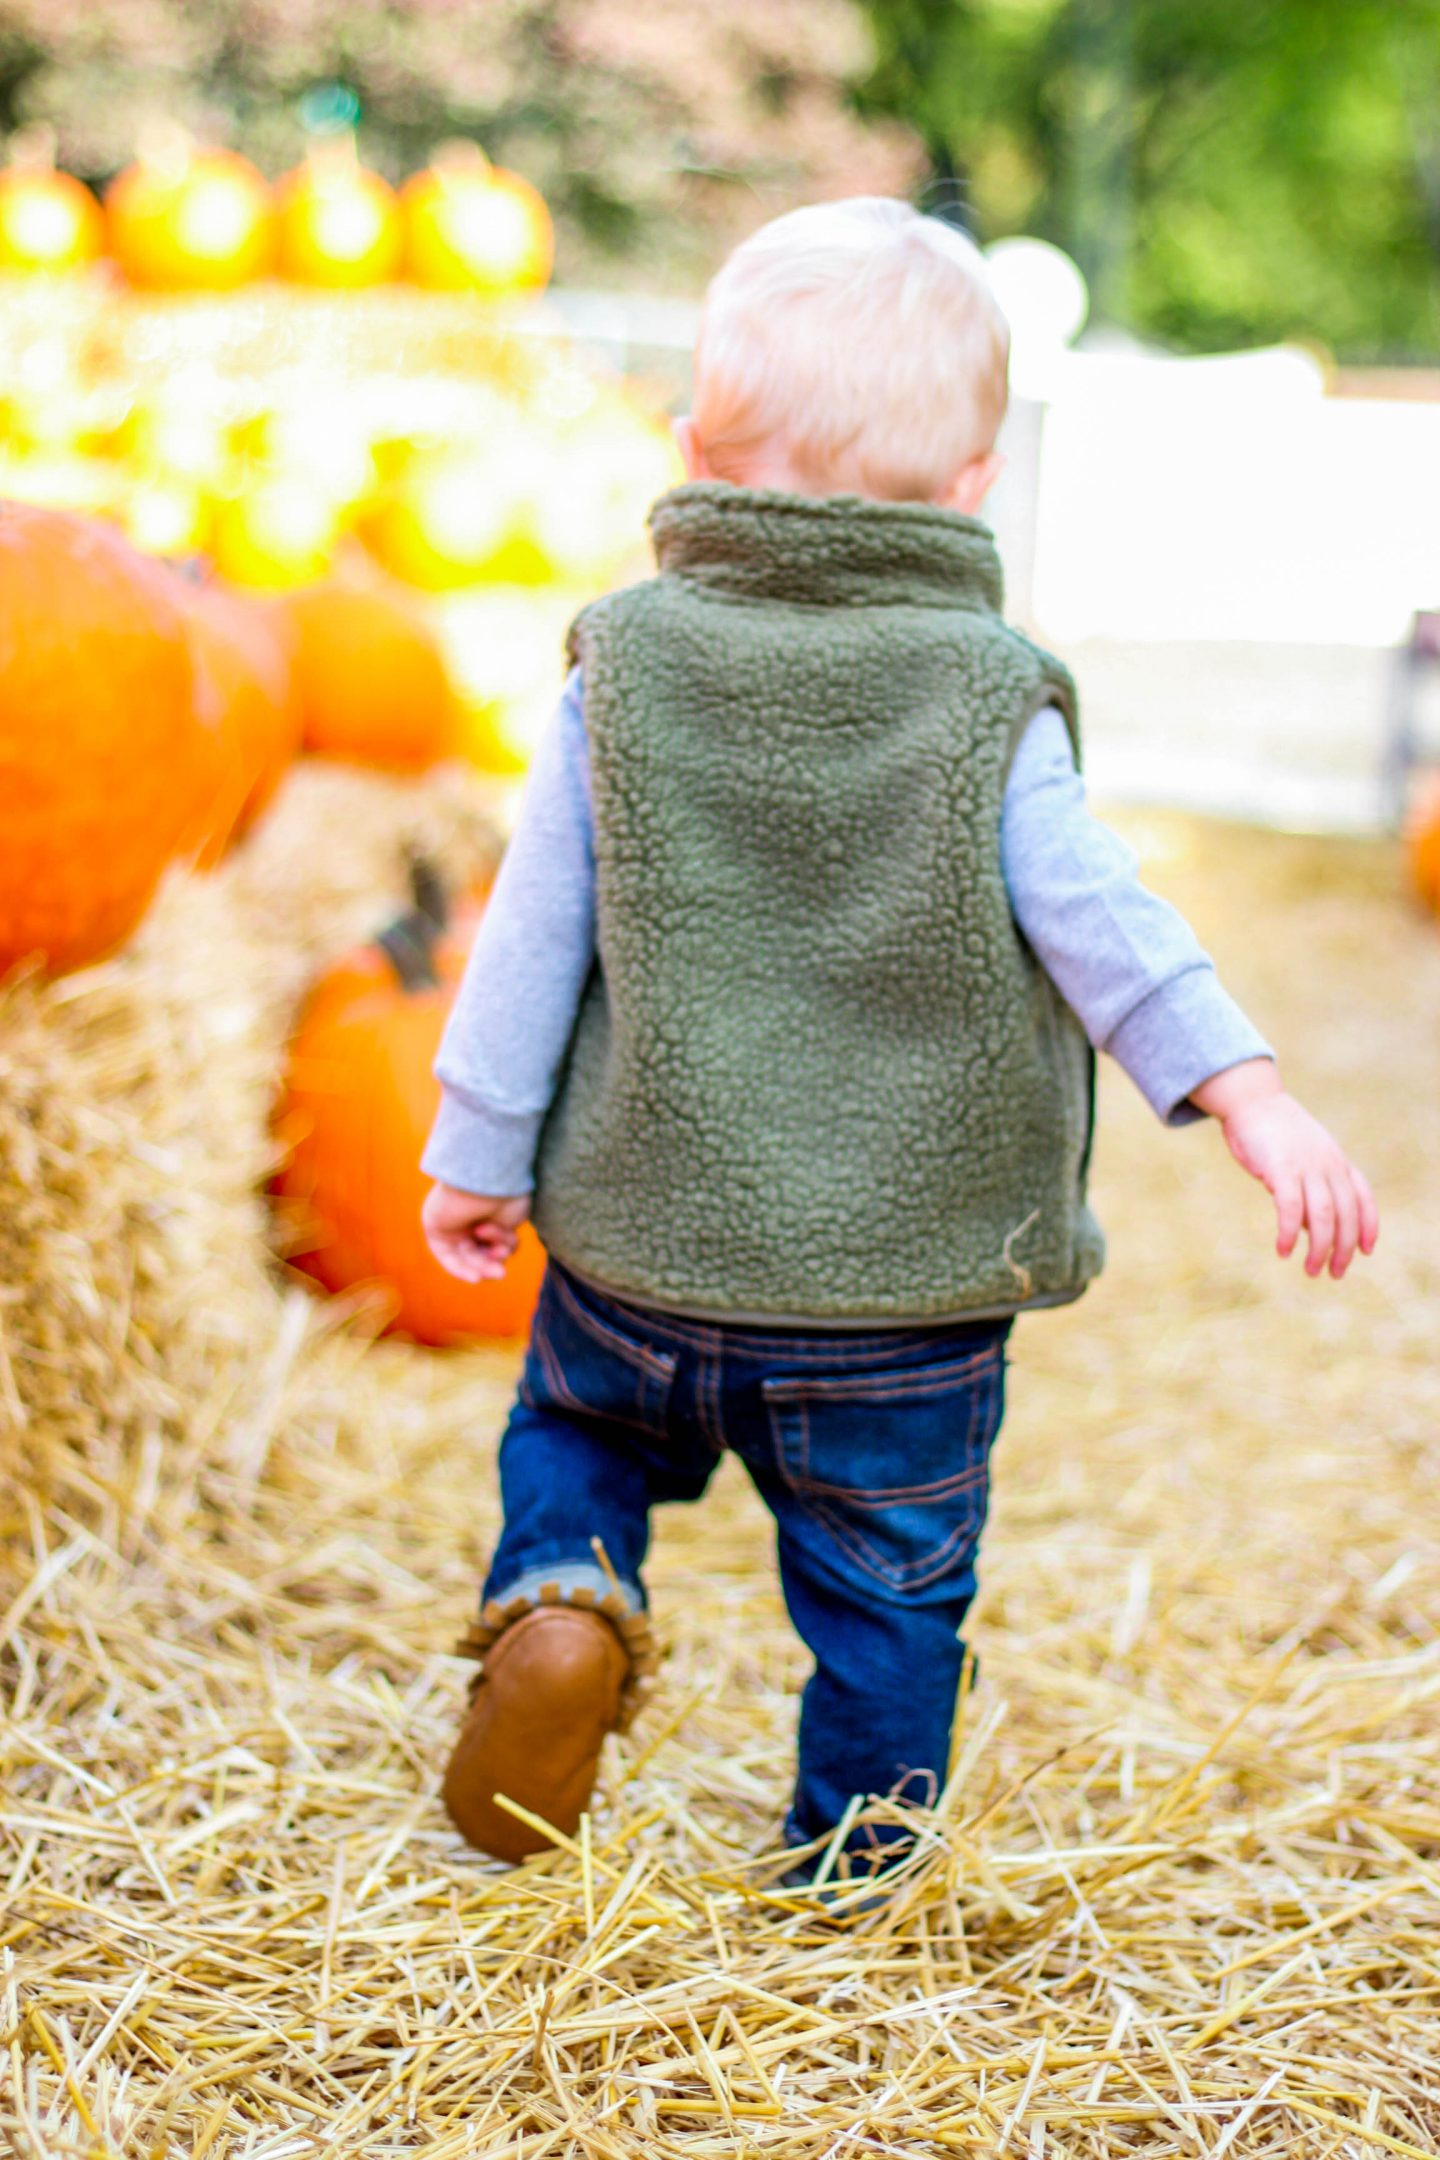 The 14 Best, Budget Friendly Places to Shop for Baby + Toddler BOY Outfits by Washington DC mom blogger Styled Blonde